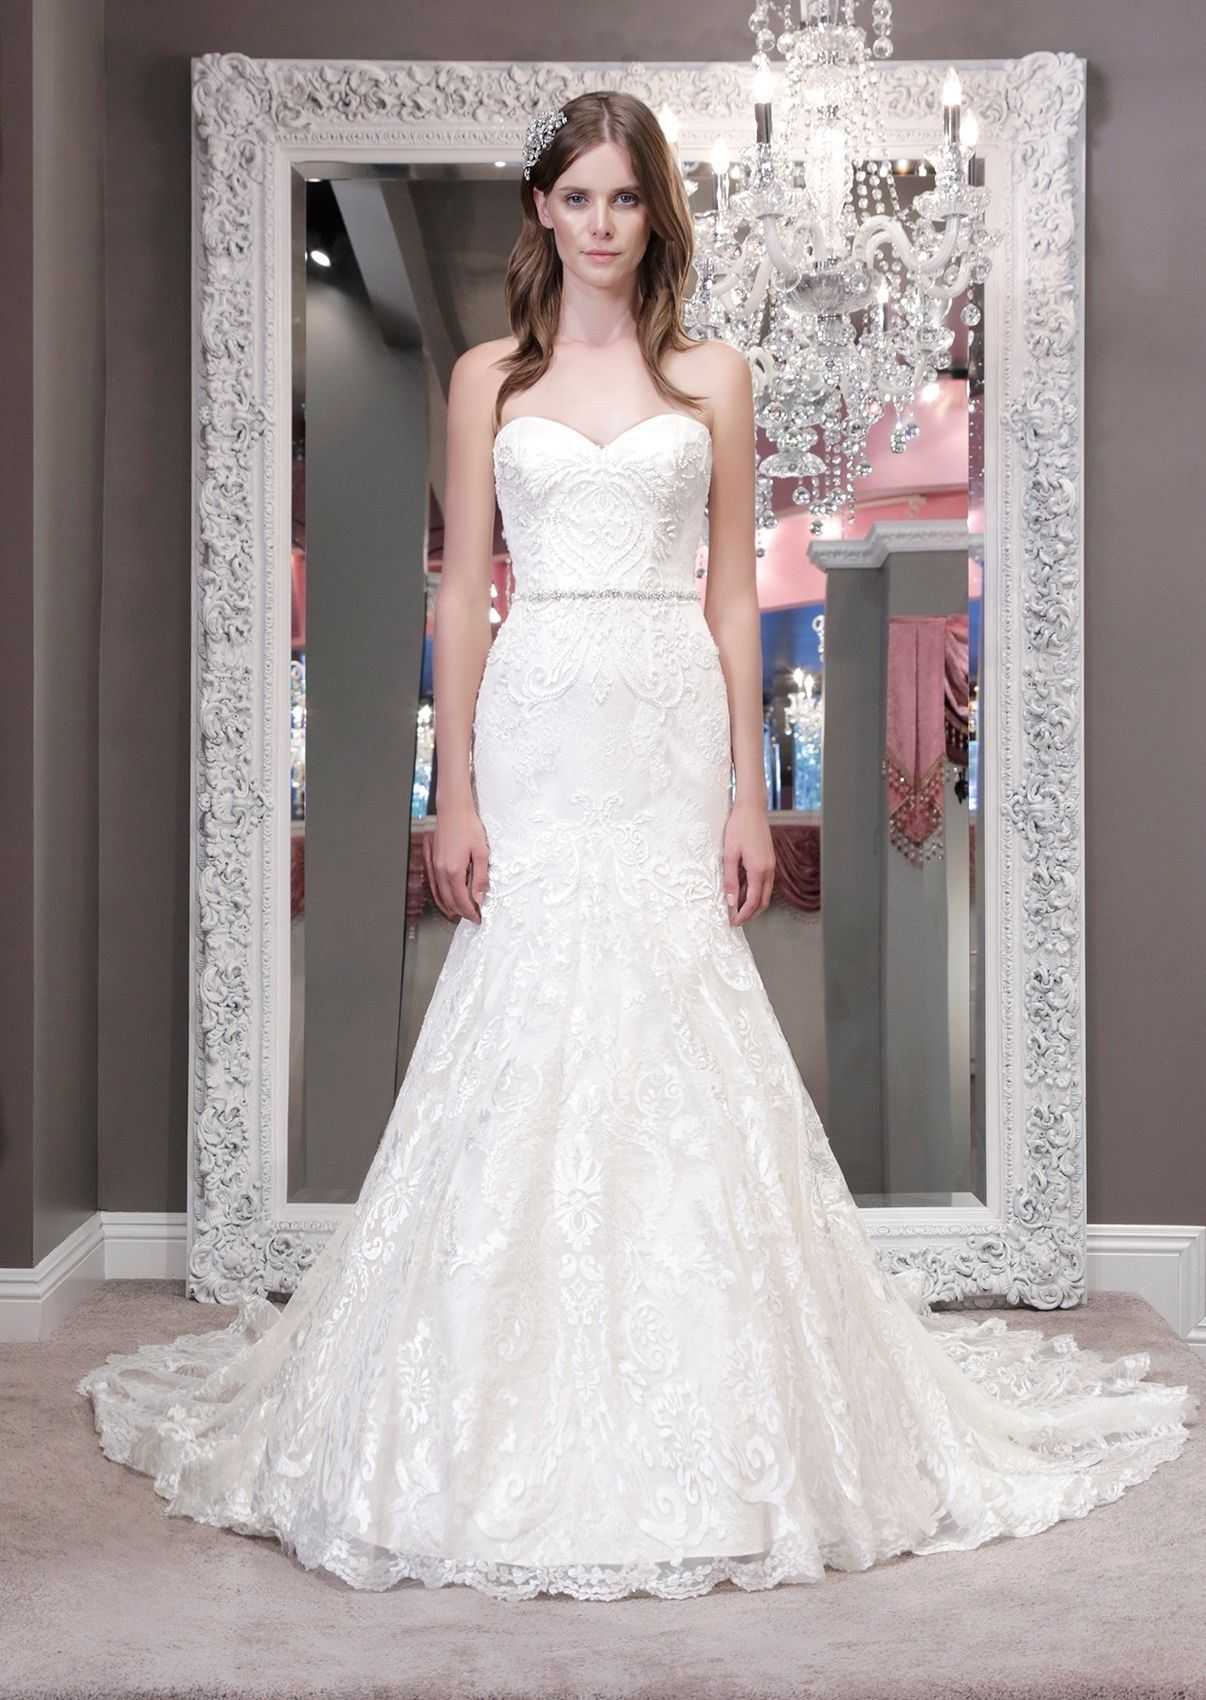 70 Dh Com Wedding Dresses Dressy For Weddings Check More At Http